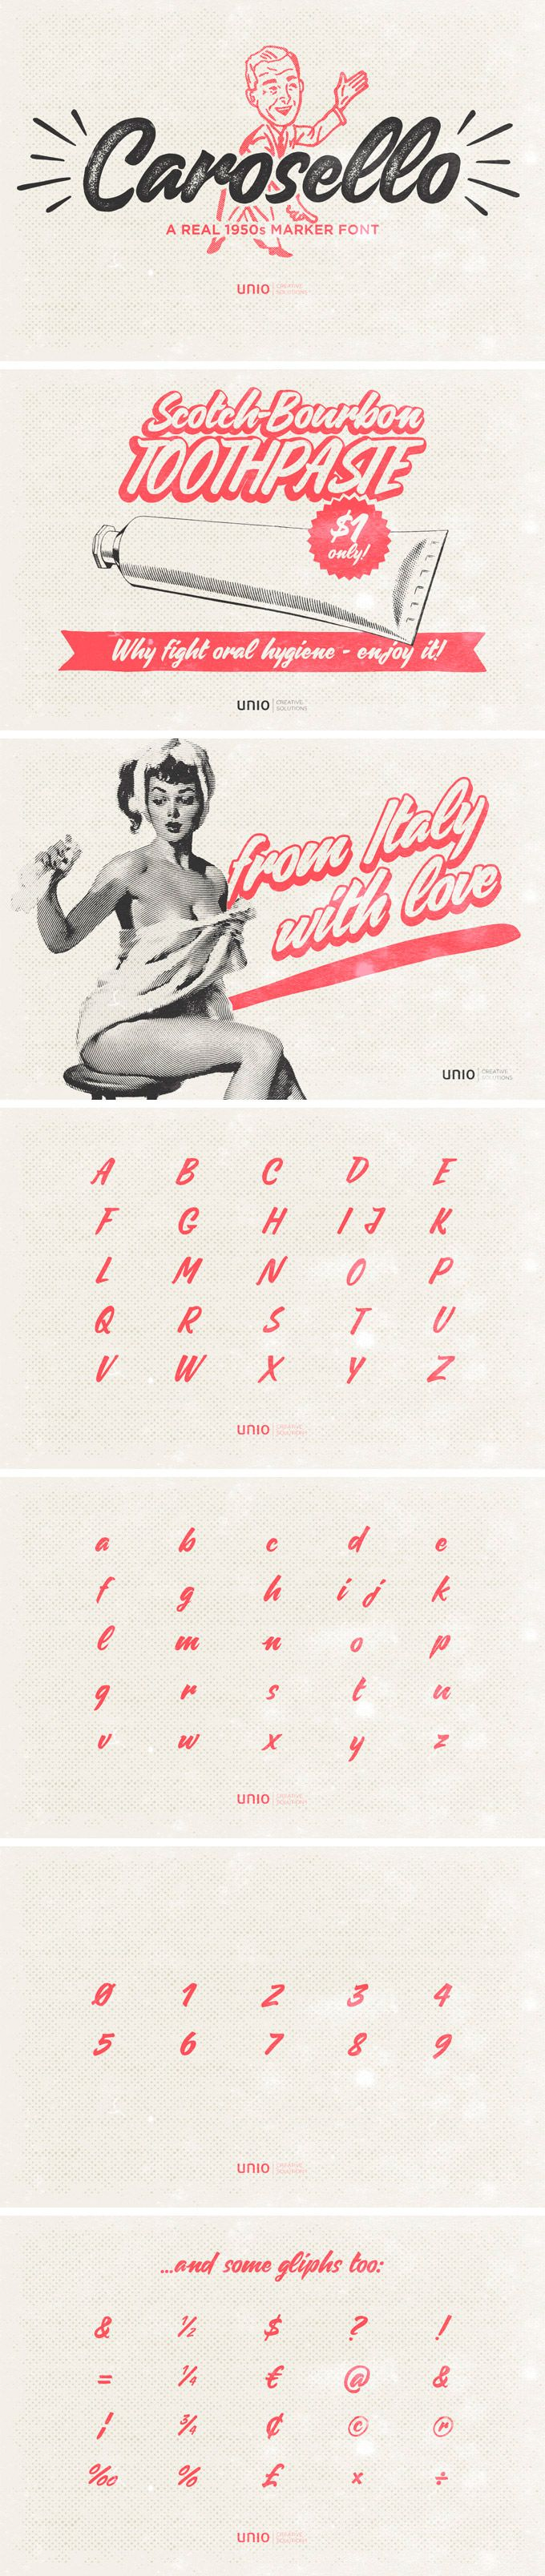 Carosello Font | Unio | Creative Solutions                                                                                                                                                                                 More